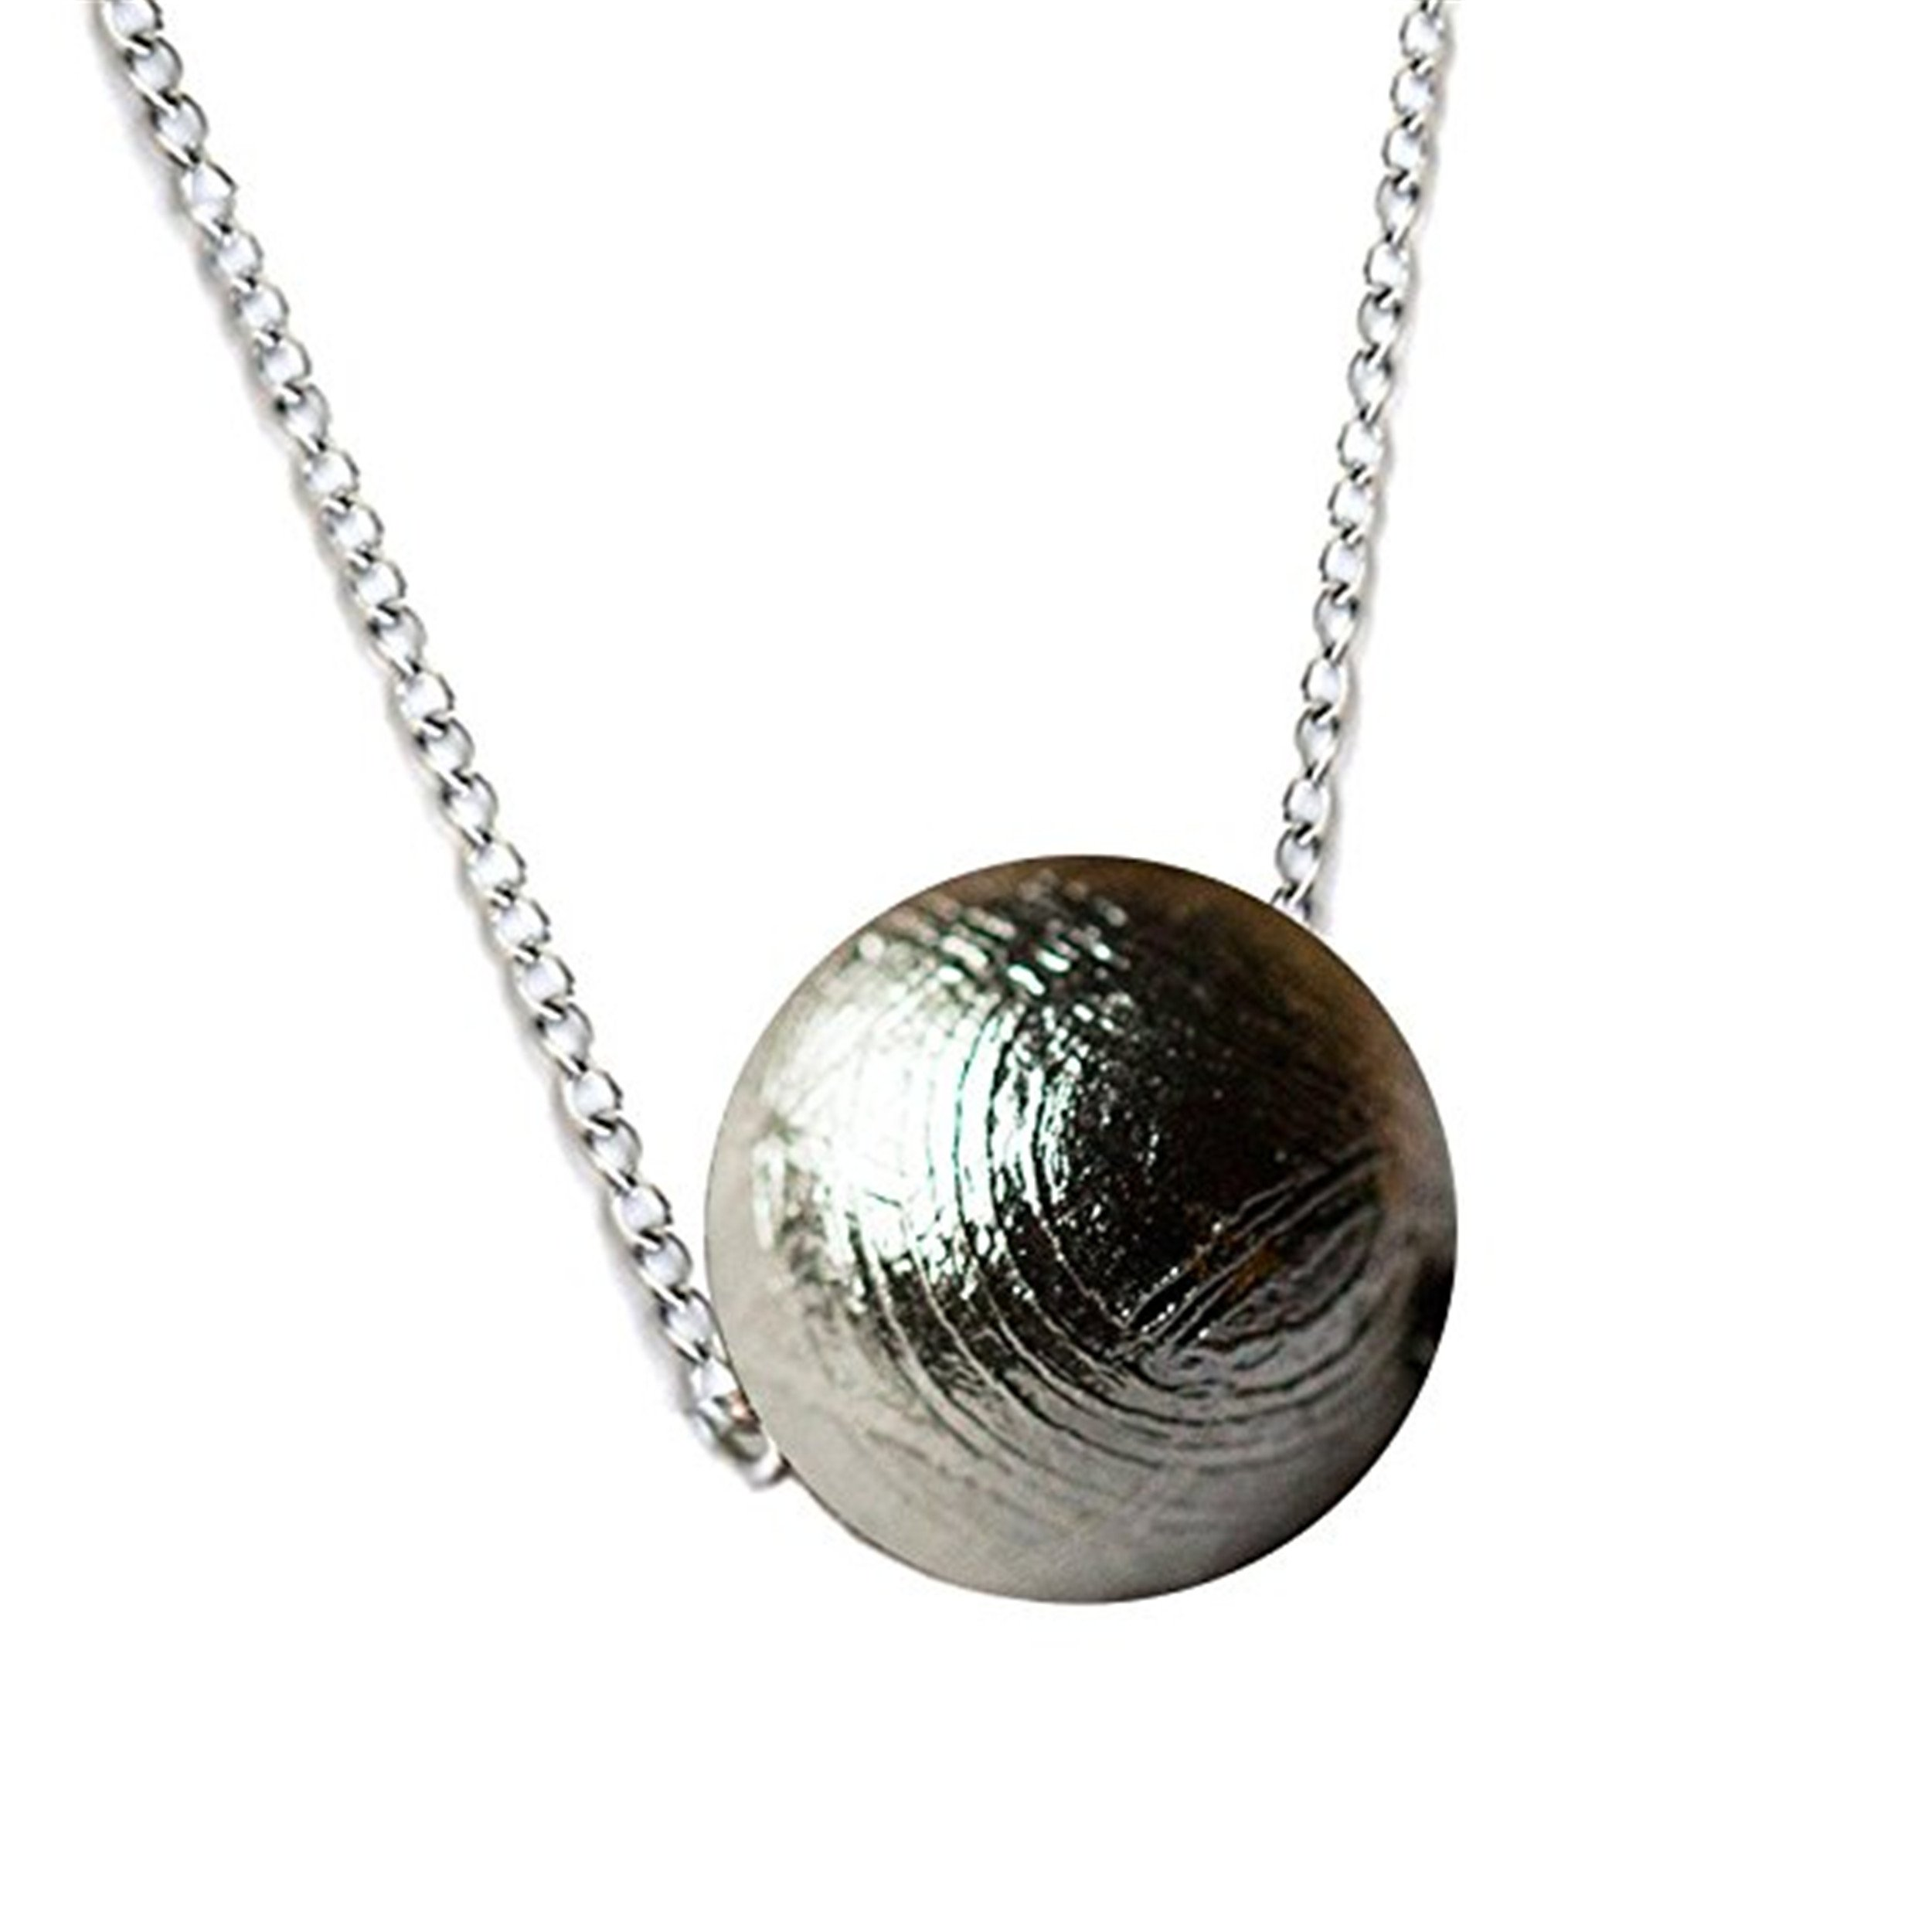 LiZiFang Genuine Natural Gibeon Meteorite Silver Plated Jewelry Round Bead Pendant